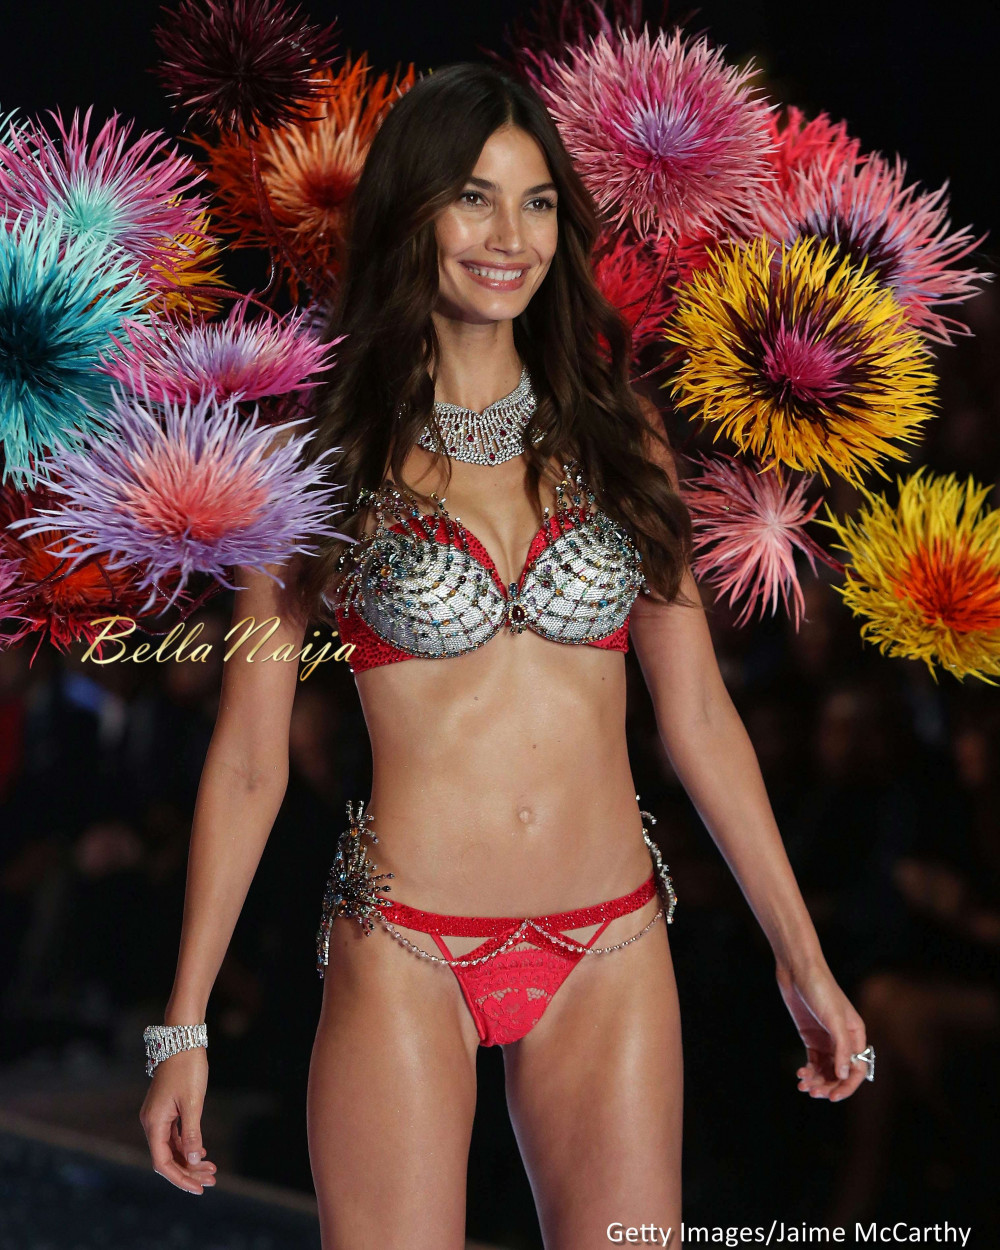 A 2 Million Fantasy Bra The World 39 S Most Stunning Models At The 2015 Victoria 39 S Secret